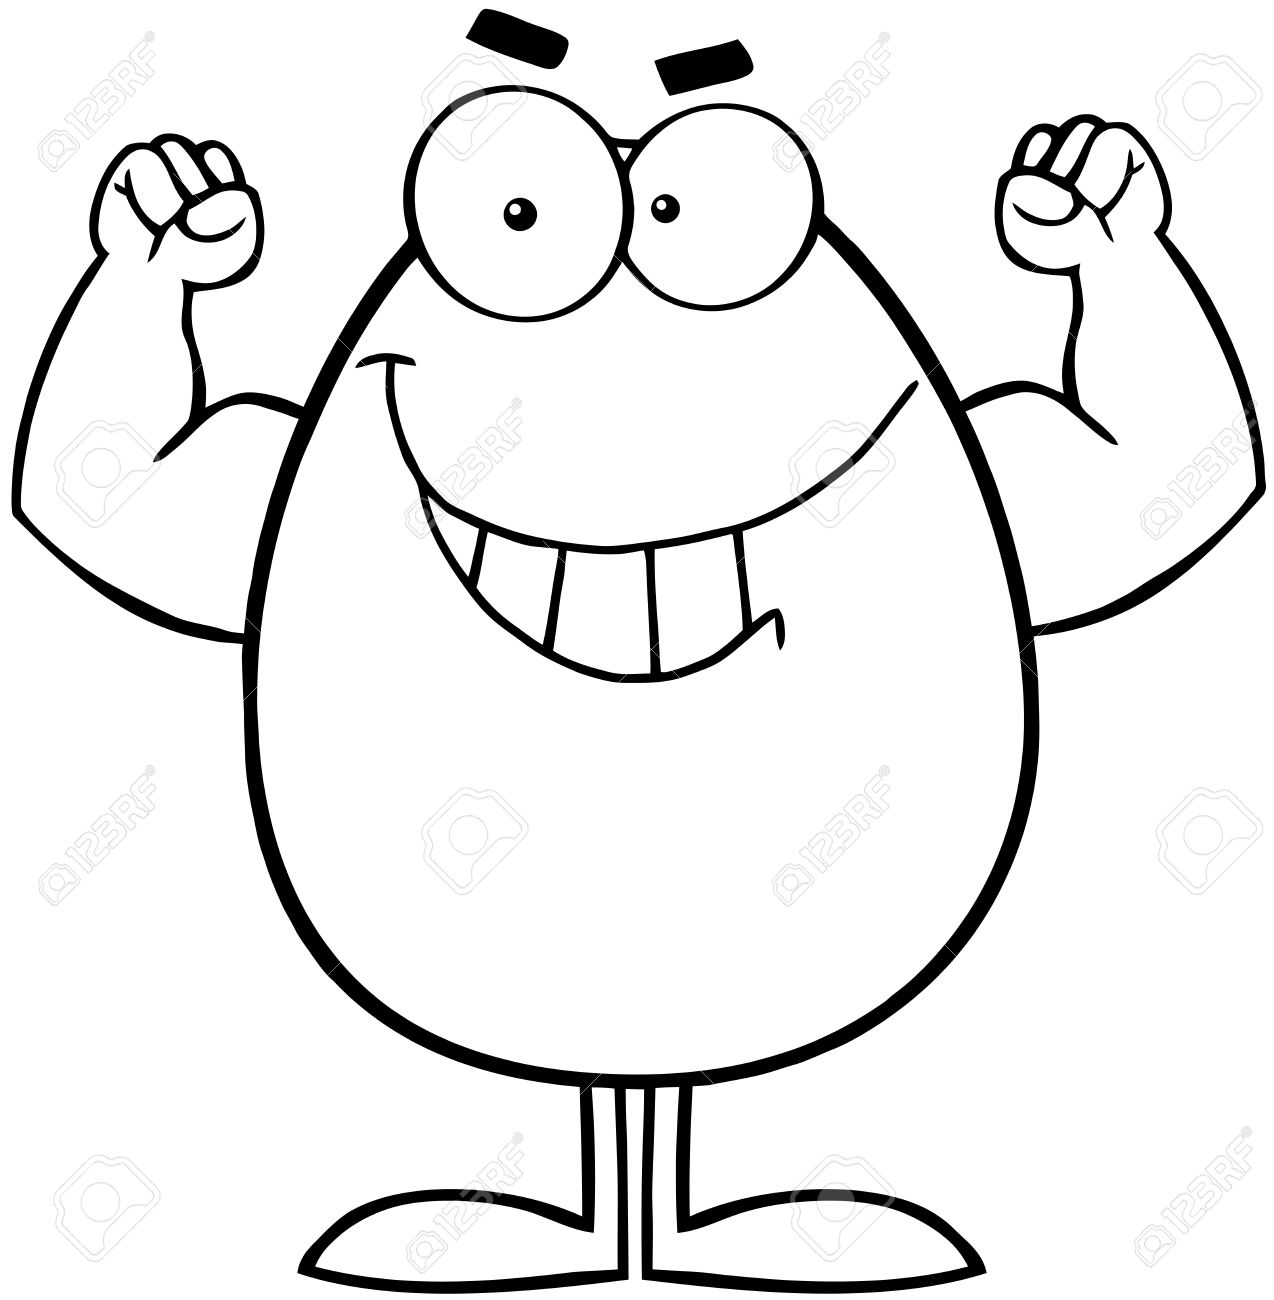 1274x1300 Outlined Strong Easter Egg Cartoon Character Royalty Free Cliparts